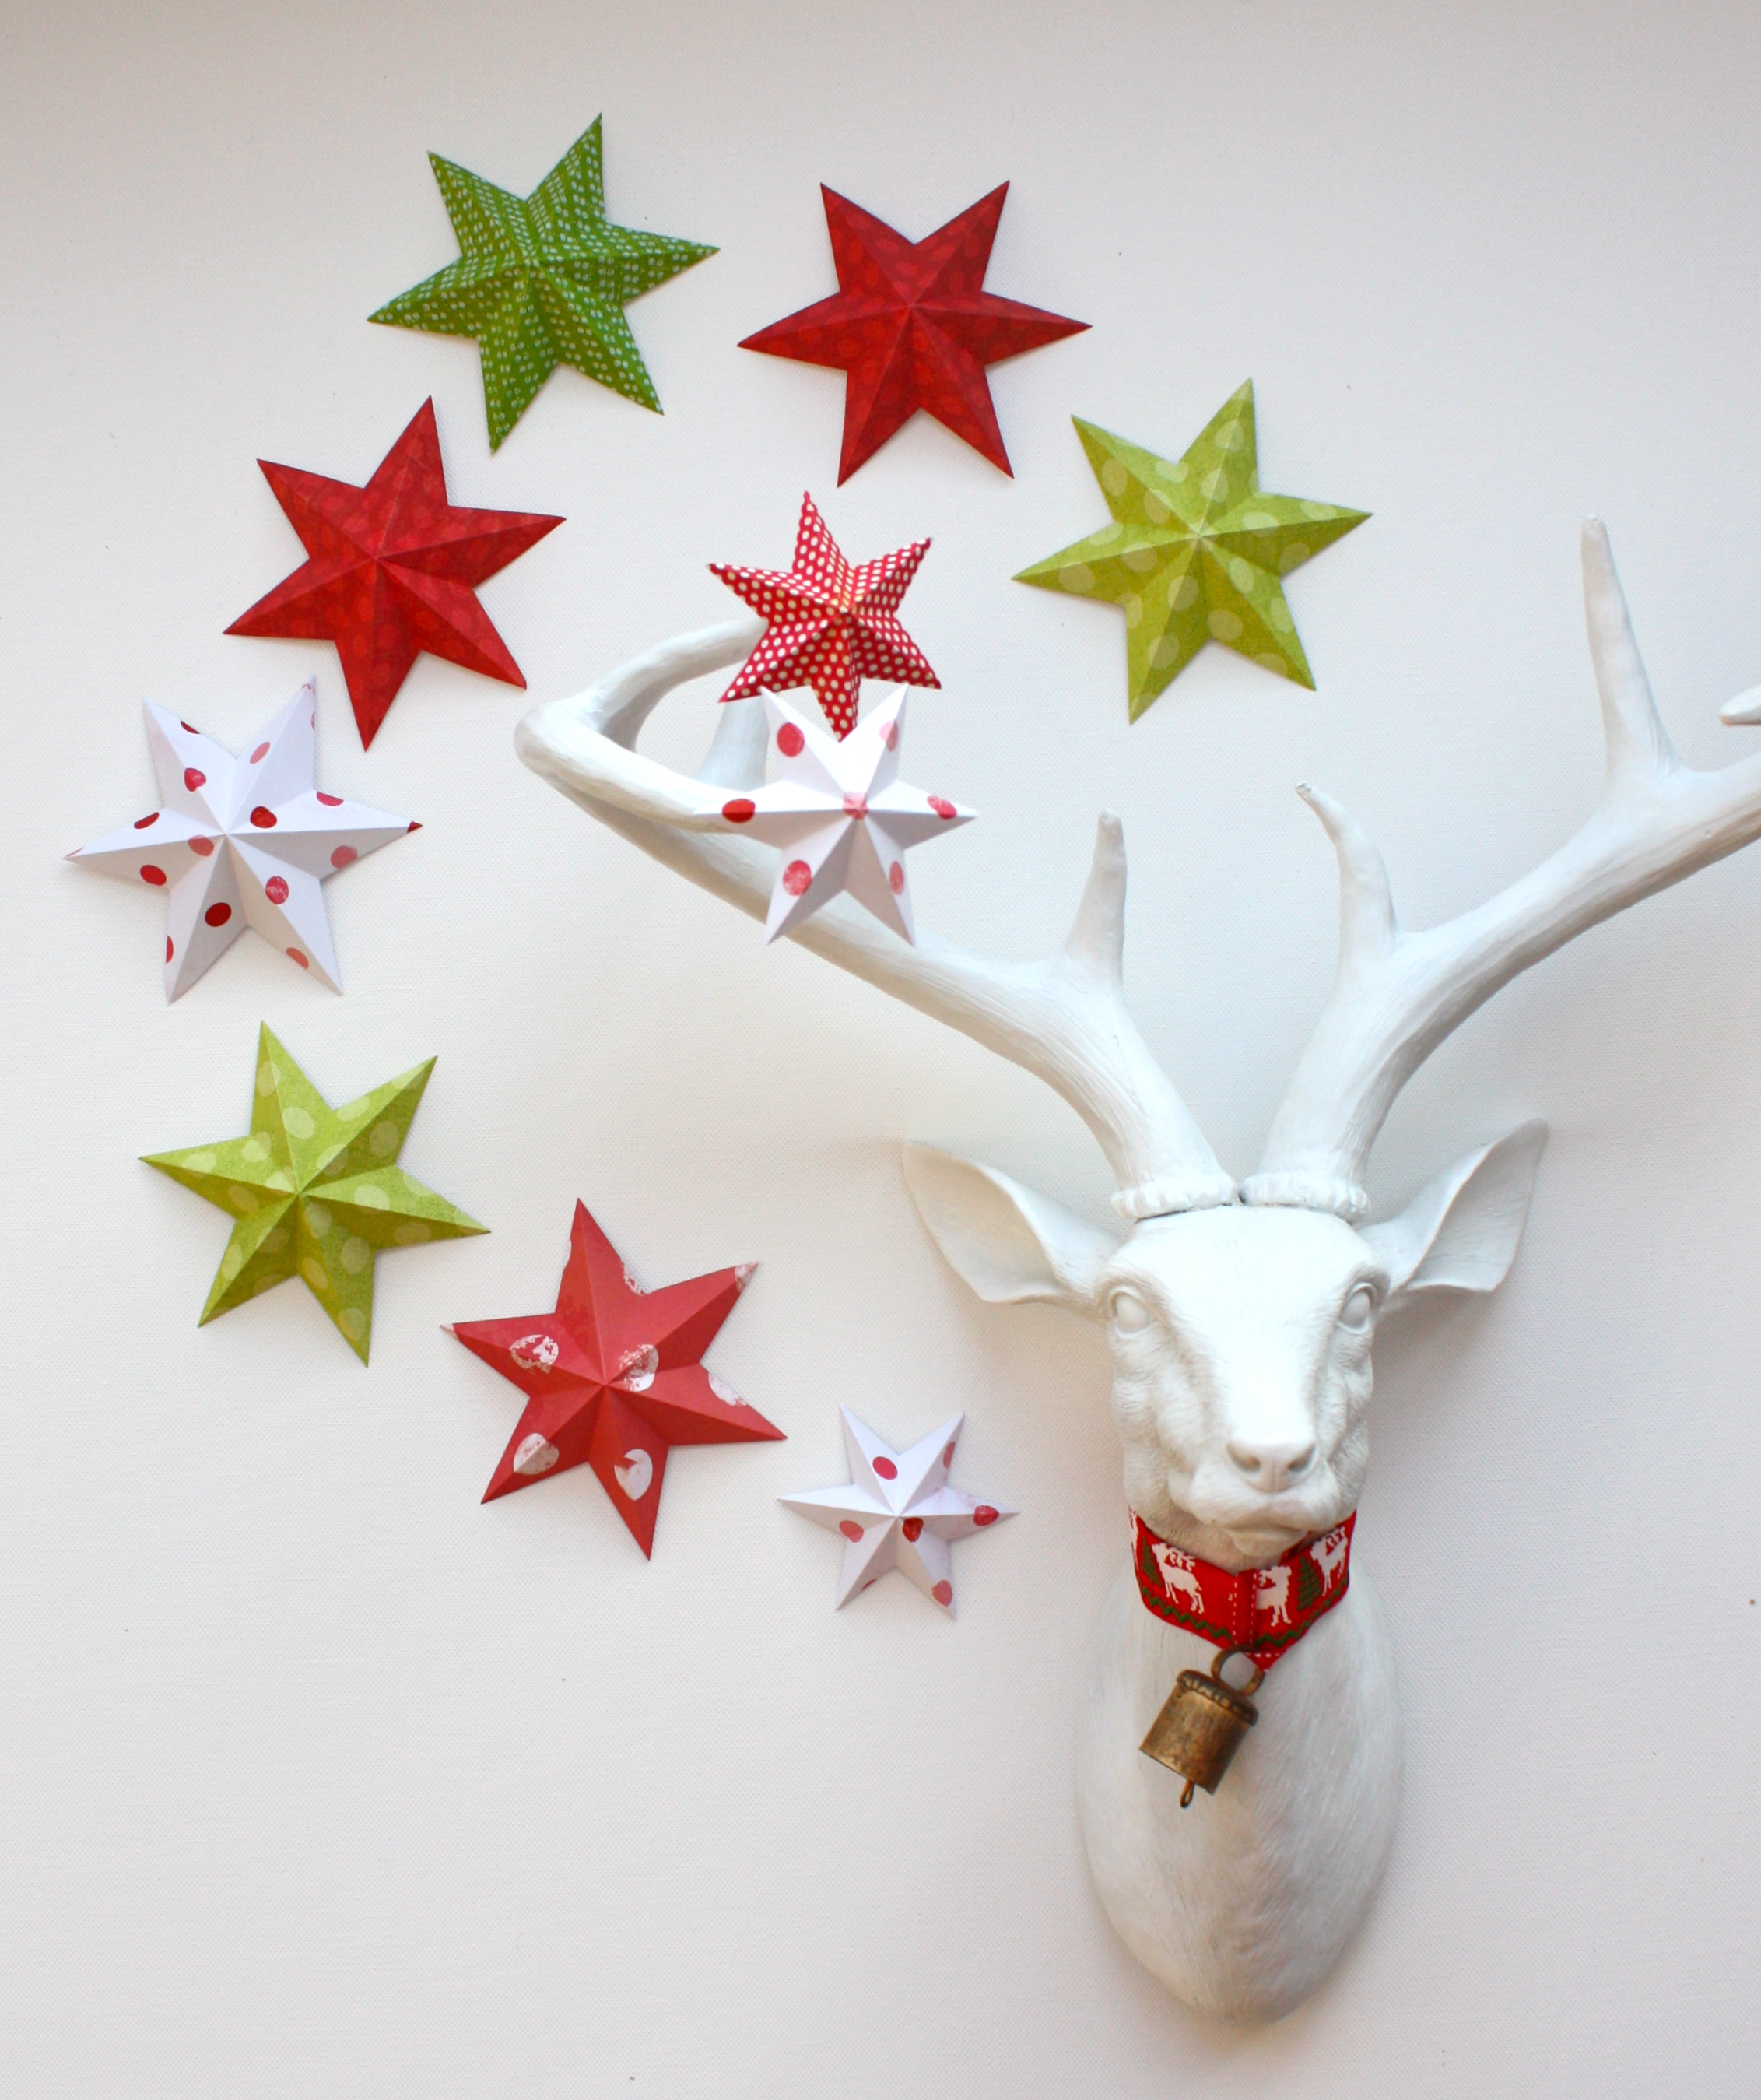 Christmas Decorations Diy With Paper : Remodelaholic paper christmas decorations to make